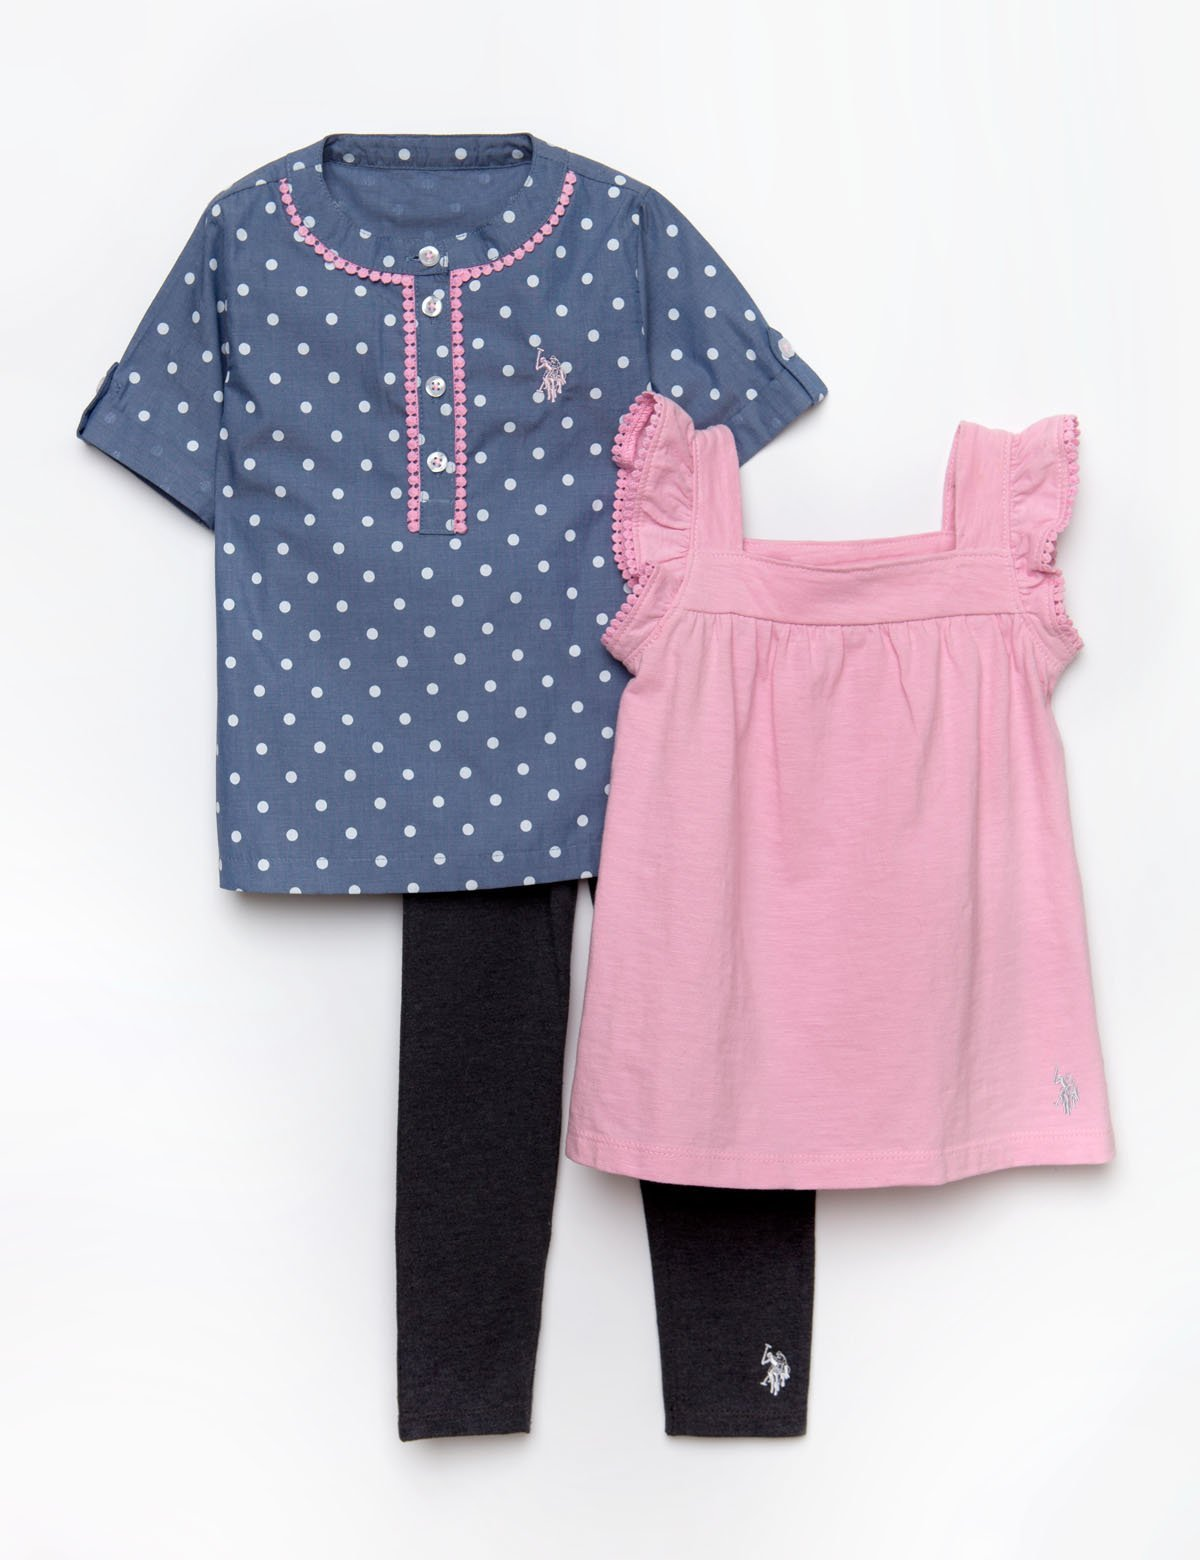 GIRLS 3 PIECE SET - SHIRT, TANK & LEGGINGS